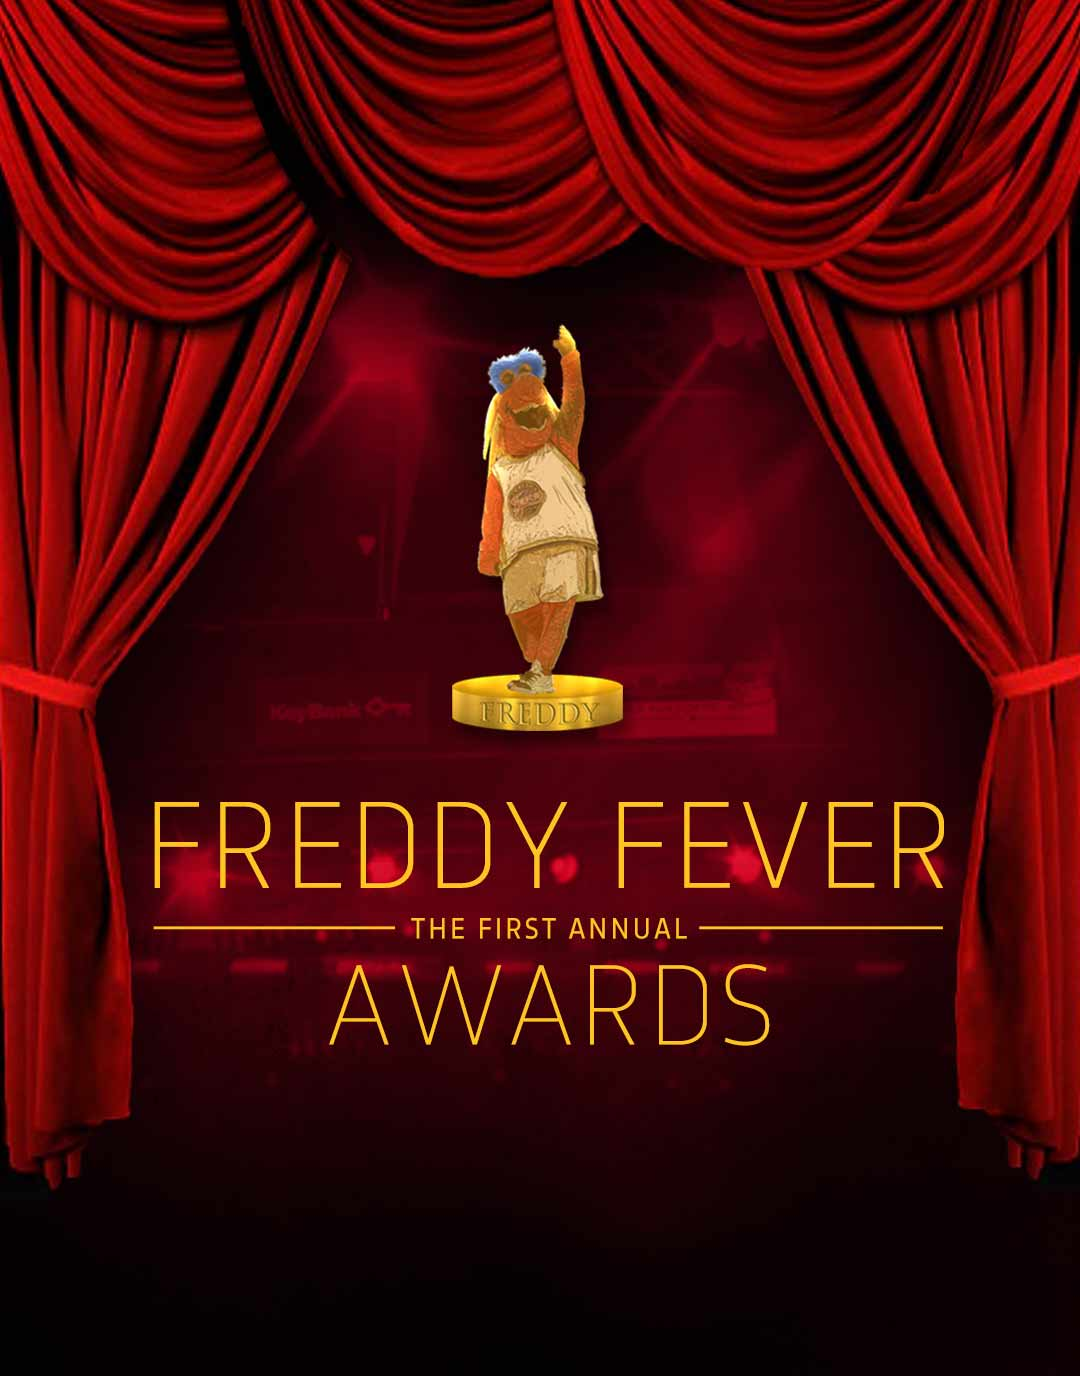 2016 Freddy Fever Awards: Nominees